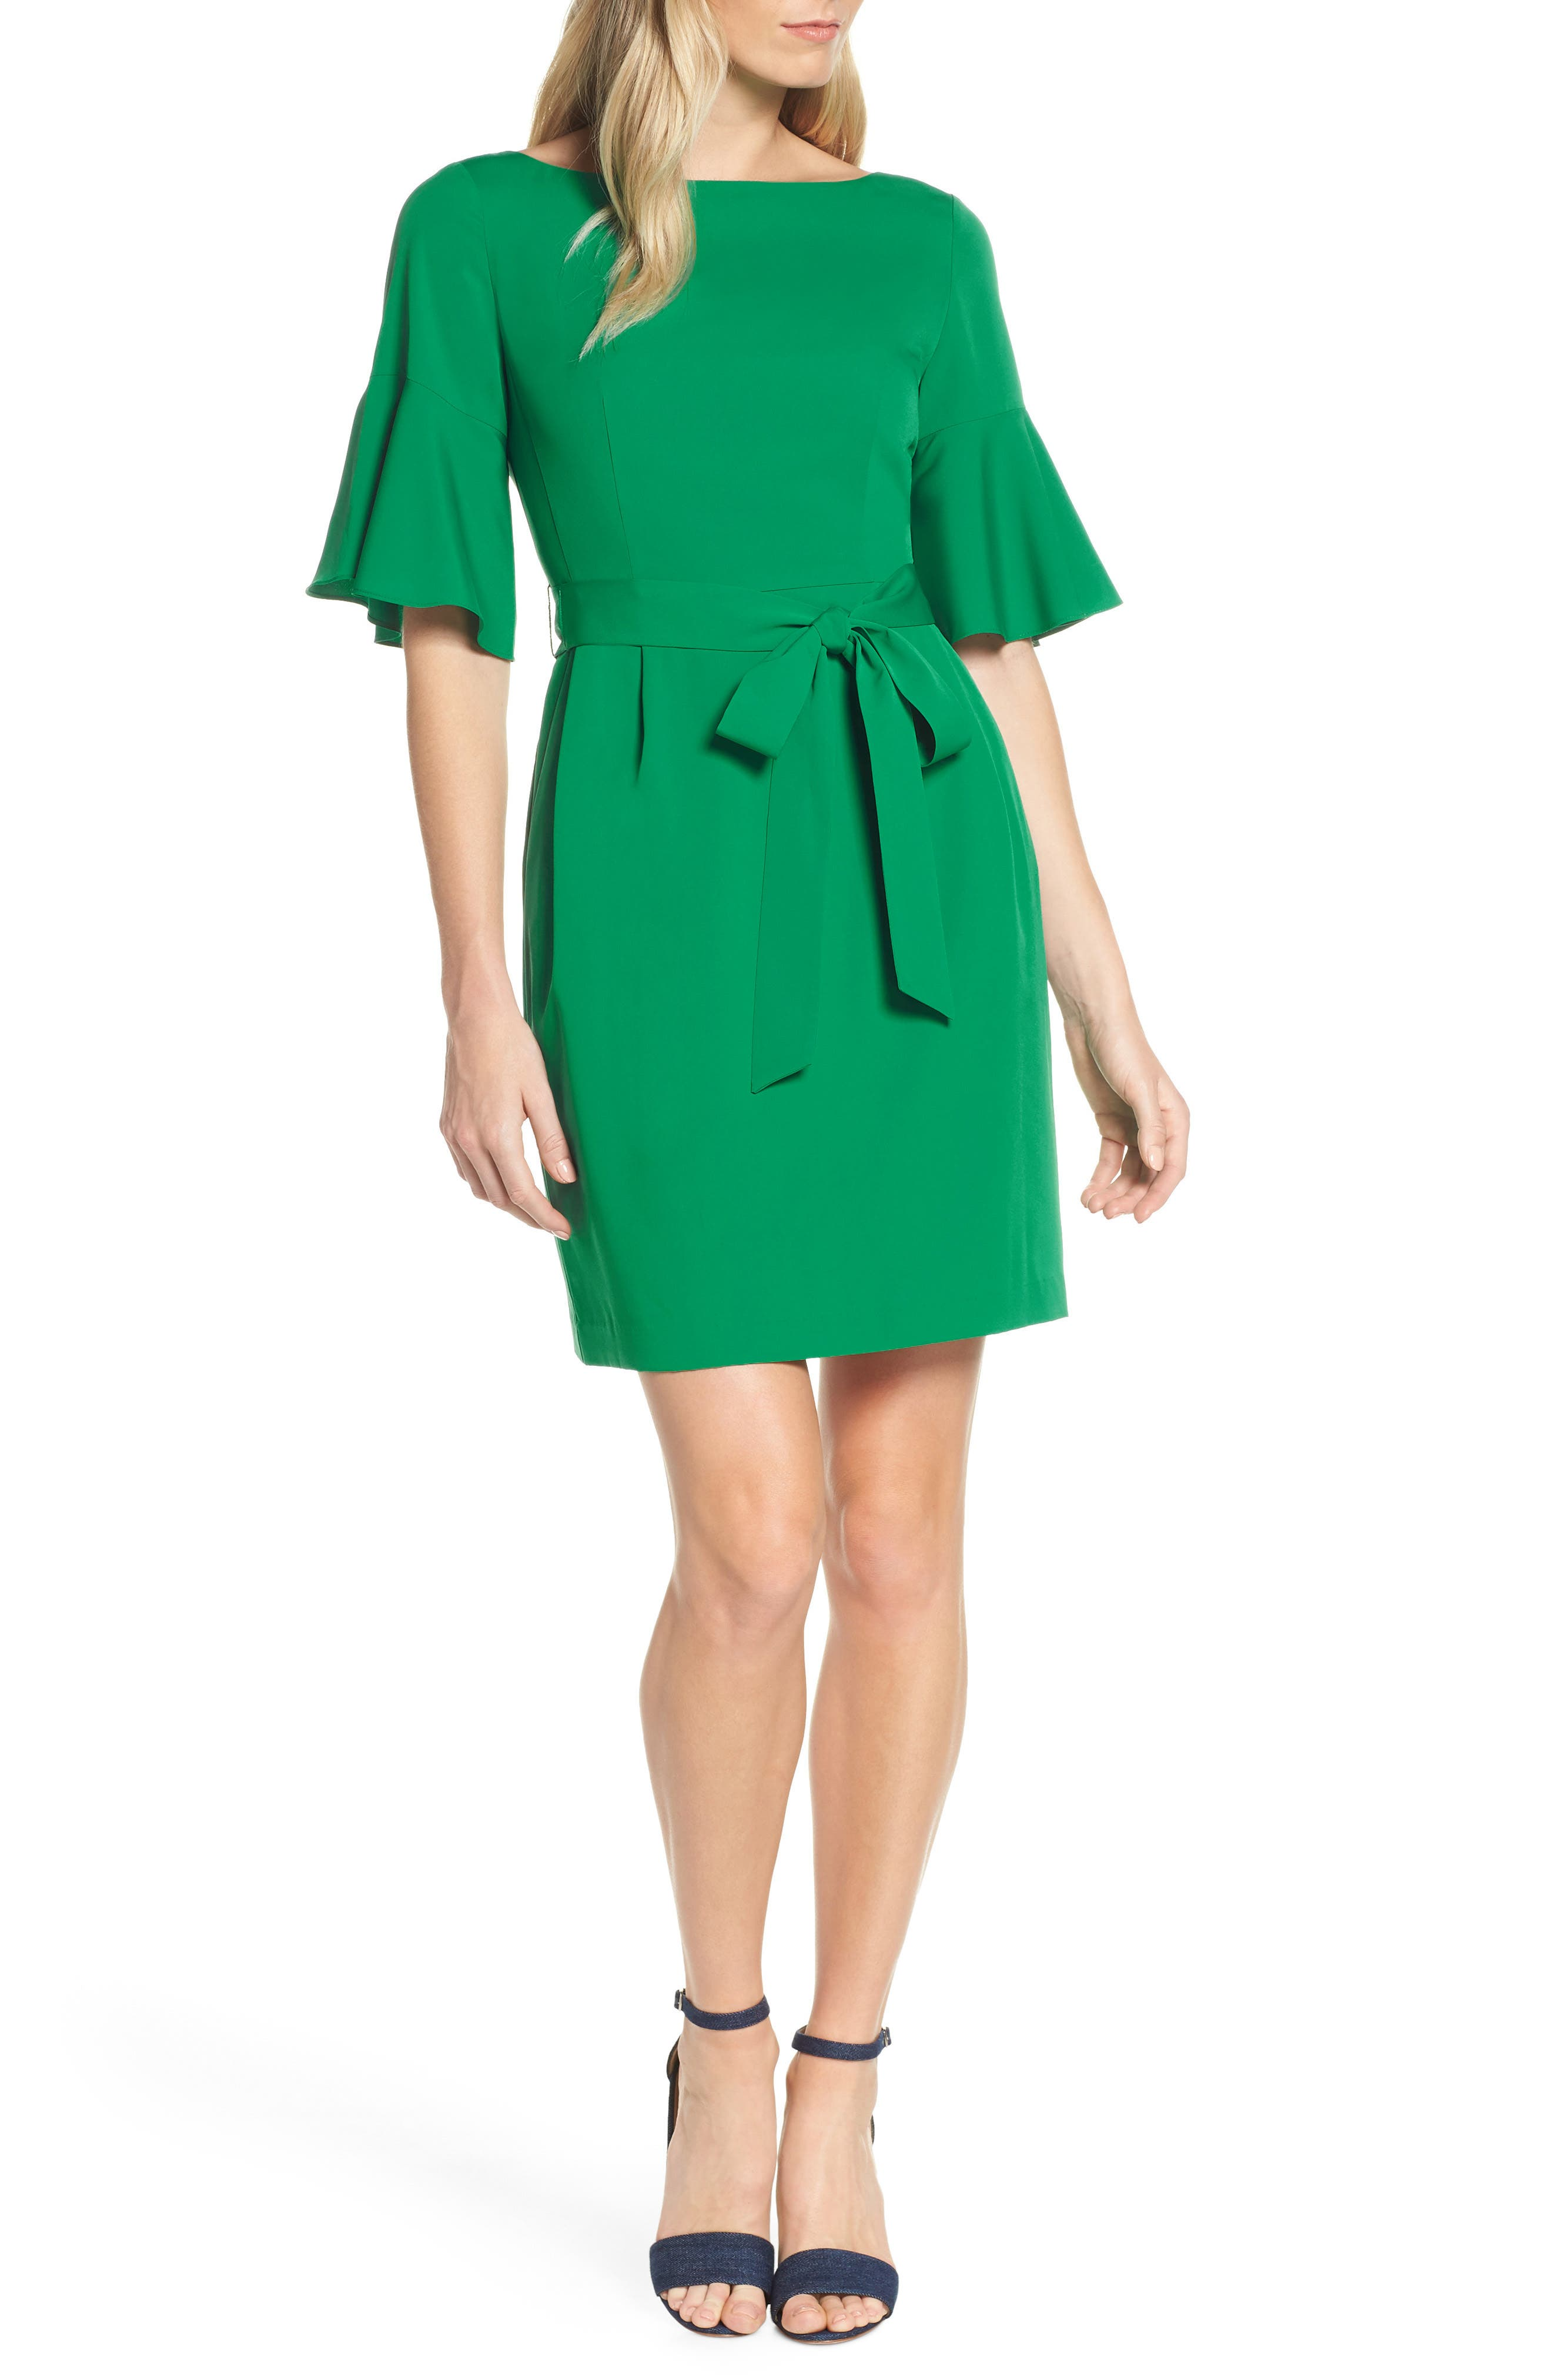 ELIZA J, Bell Sleeve Sheath Dress, Main thumbnail 1, color, GREEN